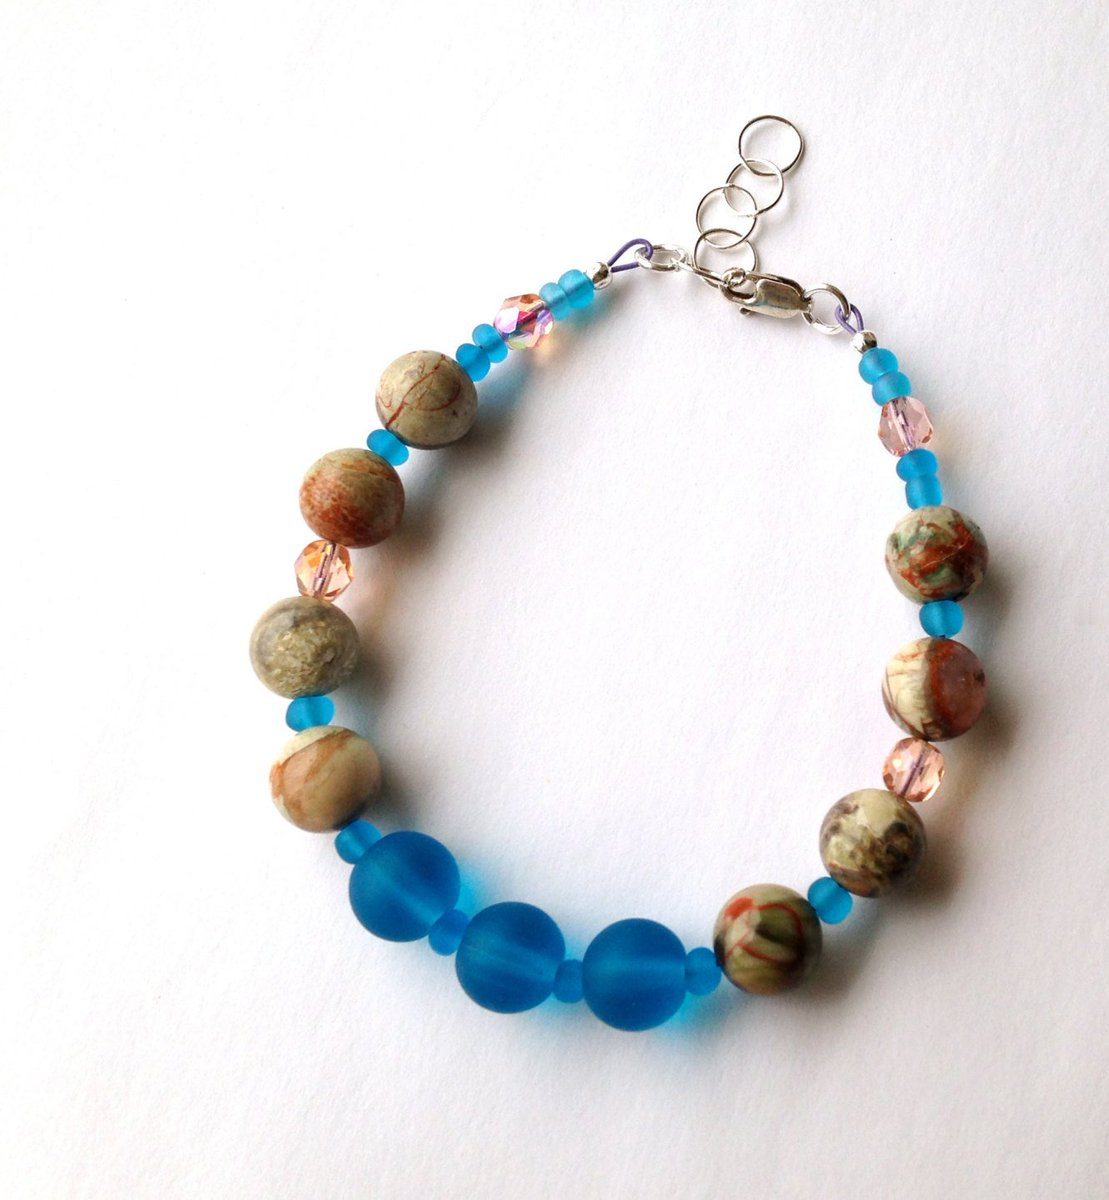 This has all the beach colors #beach #bracelet with jasper and cultured sea glass #jewelry from my #Etsy shop   http:// crwd.fr/2t9M3m7  &nbsp;  <br>http://pic.twitter.com/R8TyAeOQWd